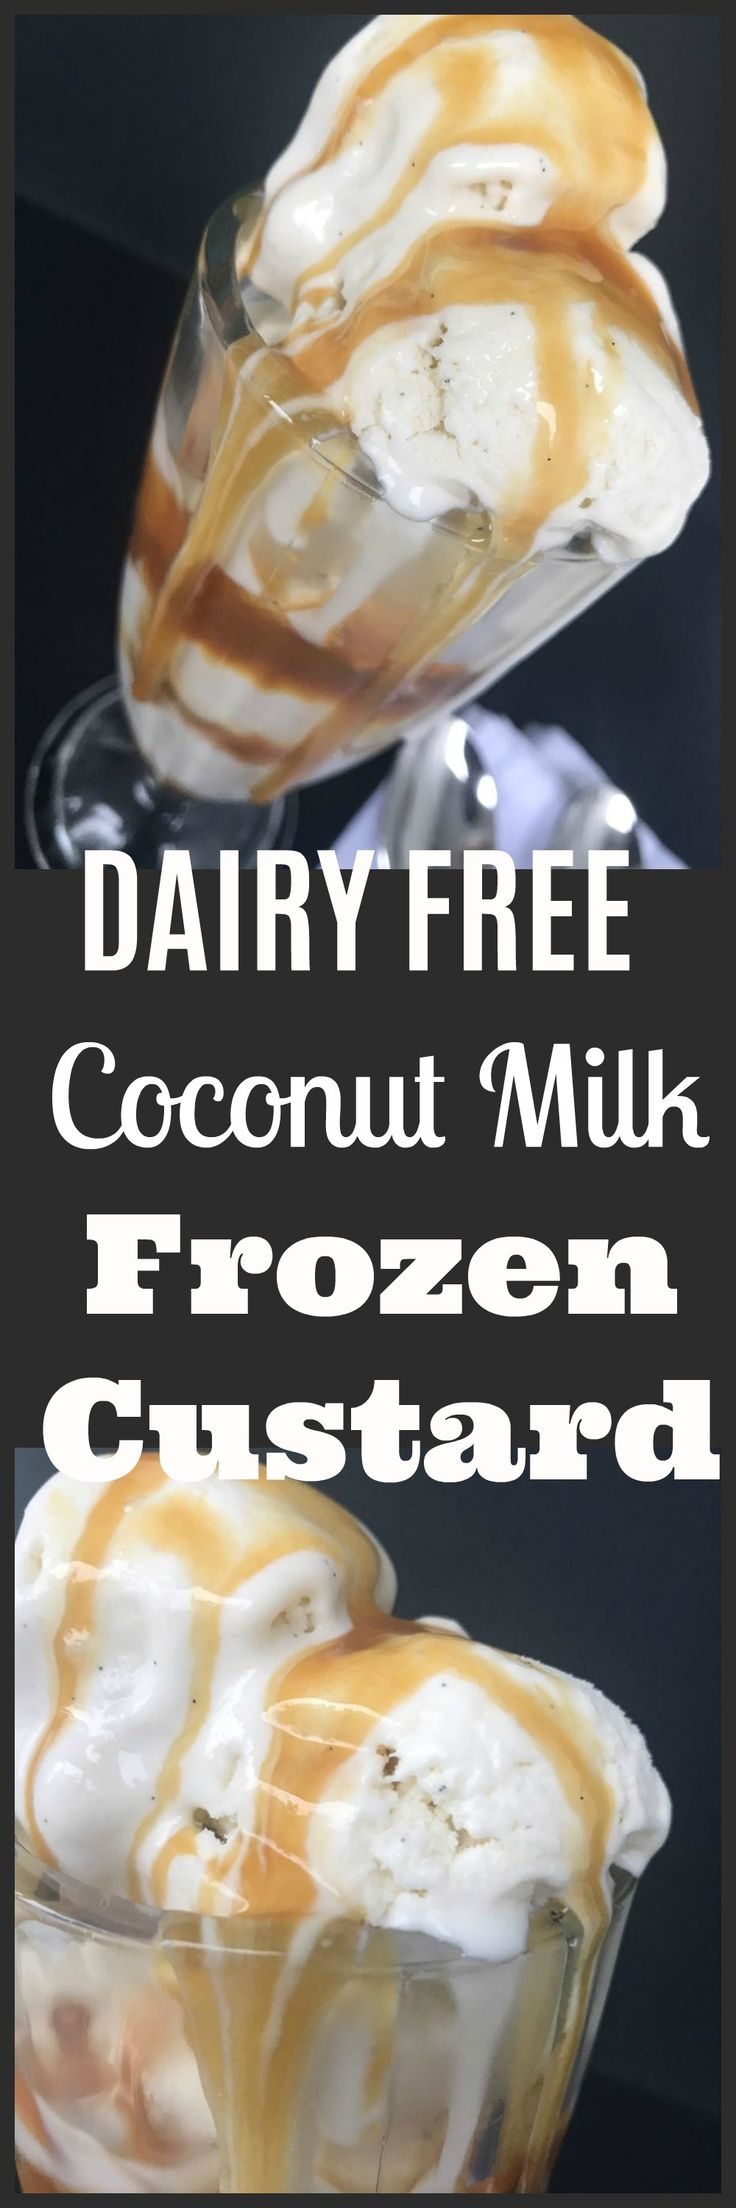 A dairy free coconut milk frozen custard recipe from Black Girls Who Brunch.